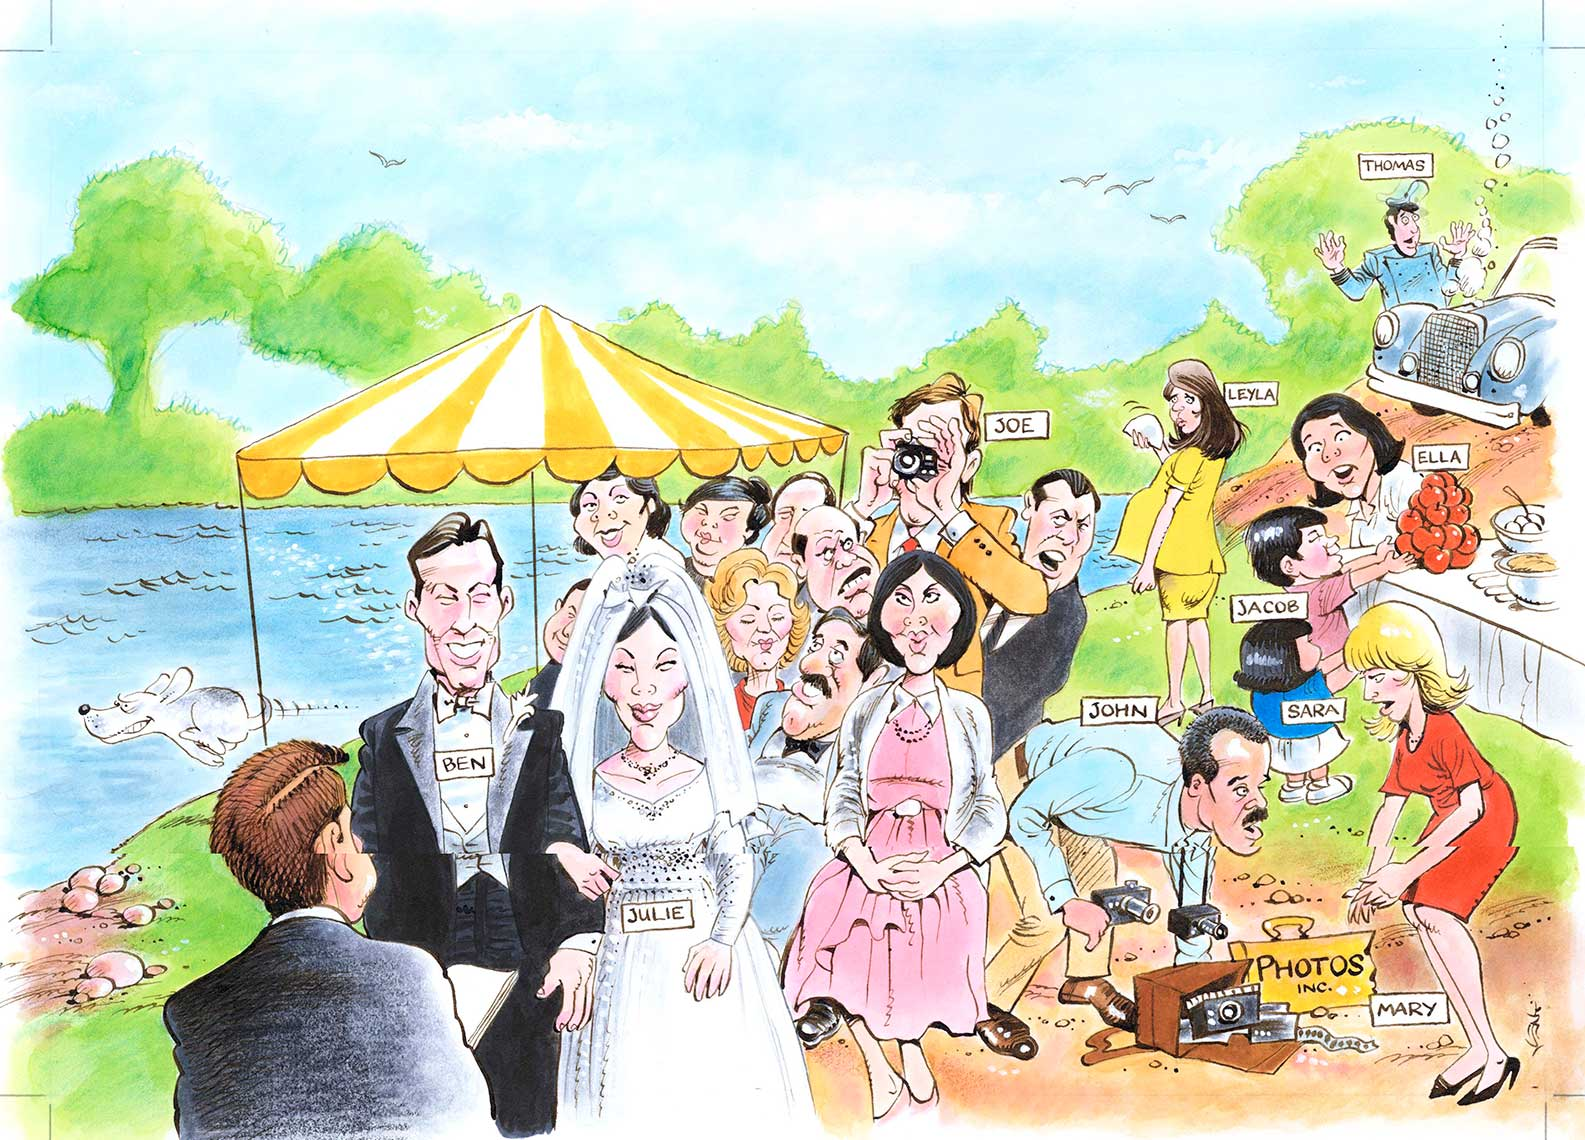 illustration-Gamble_Outdoor_Wedding-Kent Gamble